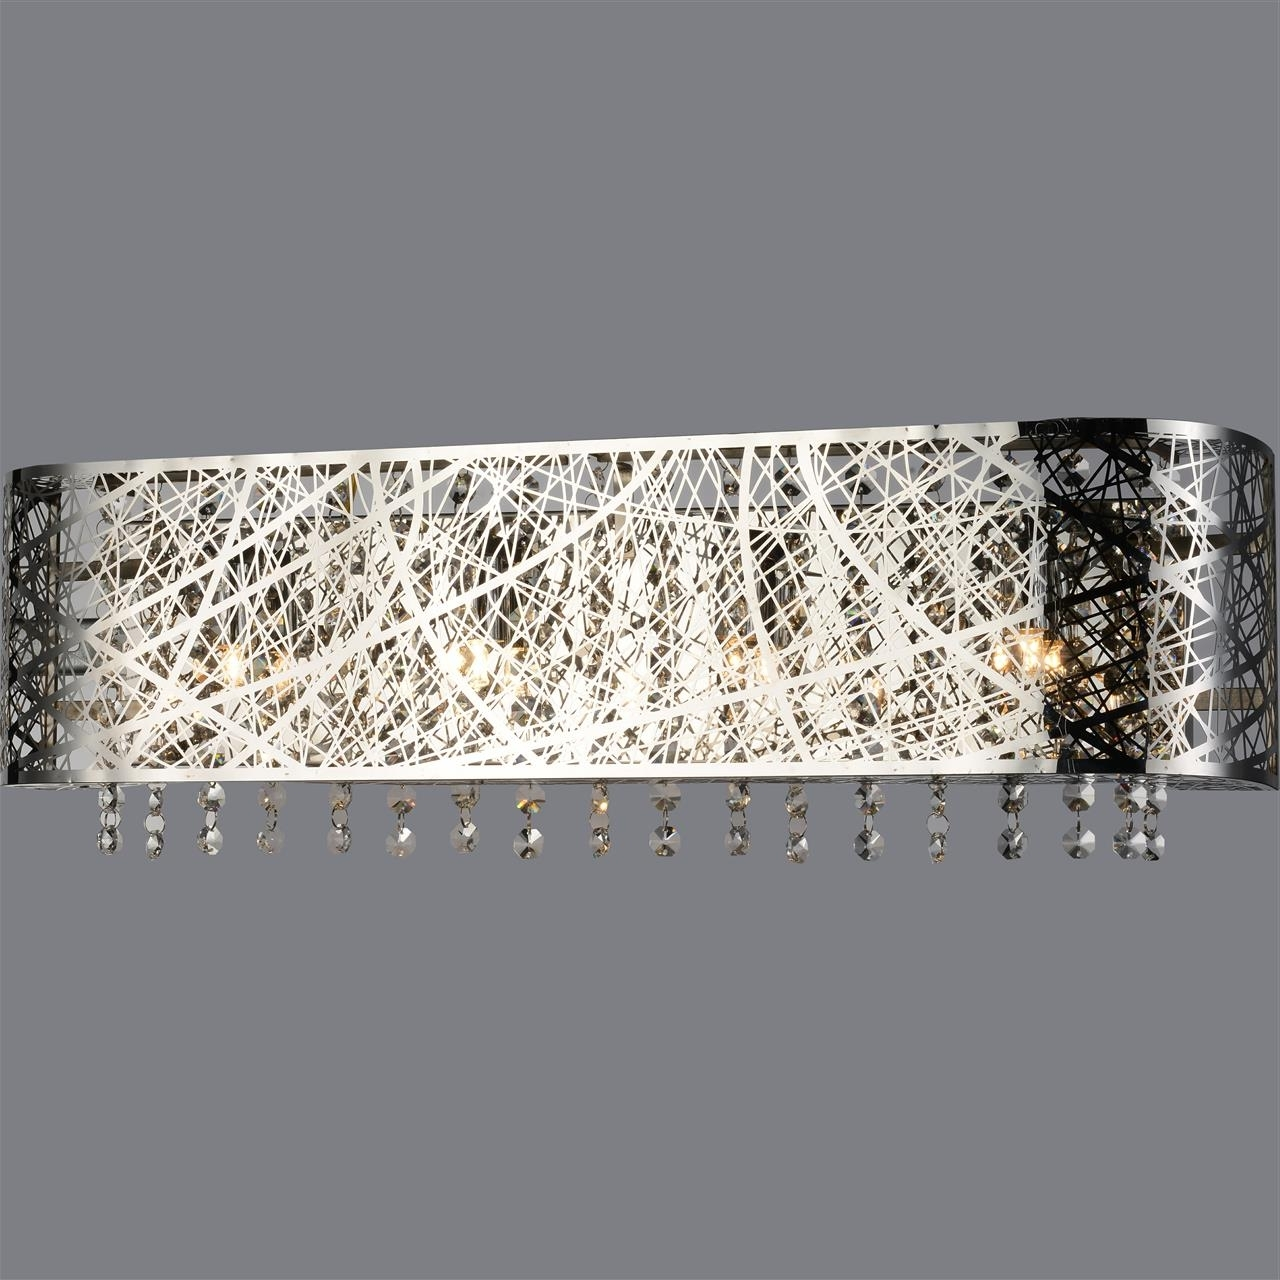 Chandelier Bathroom Vanity Lighting Intended For 2019 Brizzo Lighting Stores (View 8 of 20)